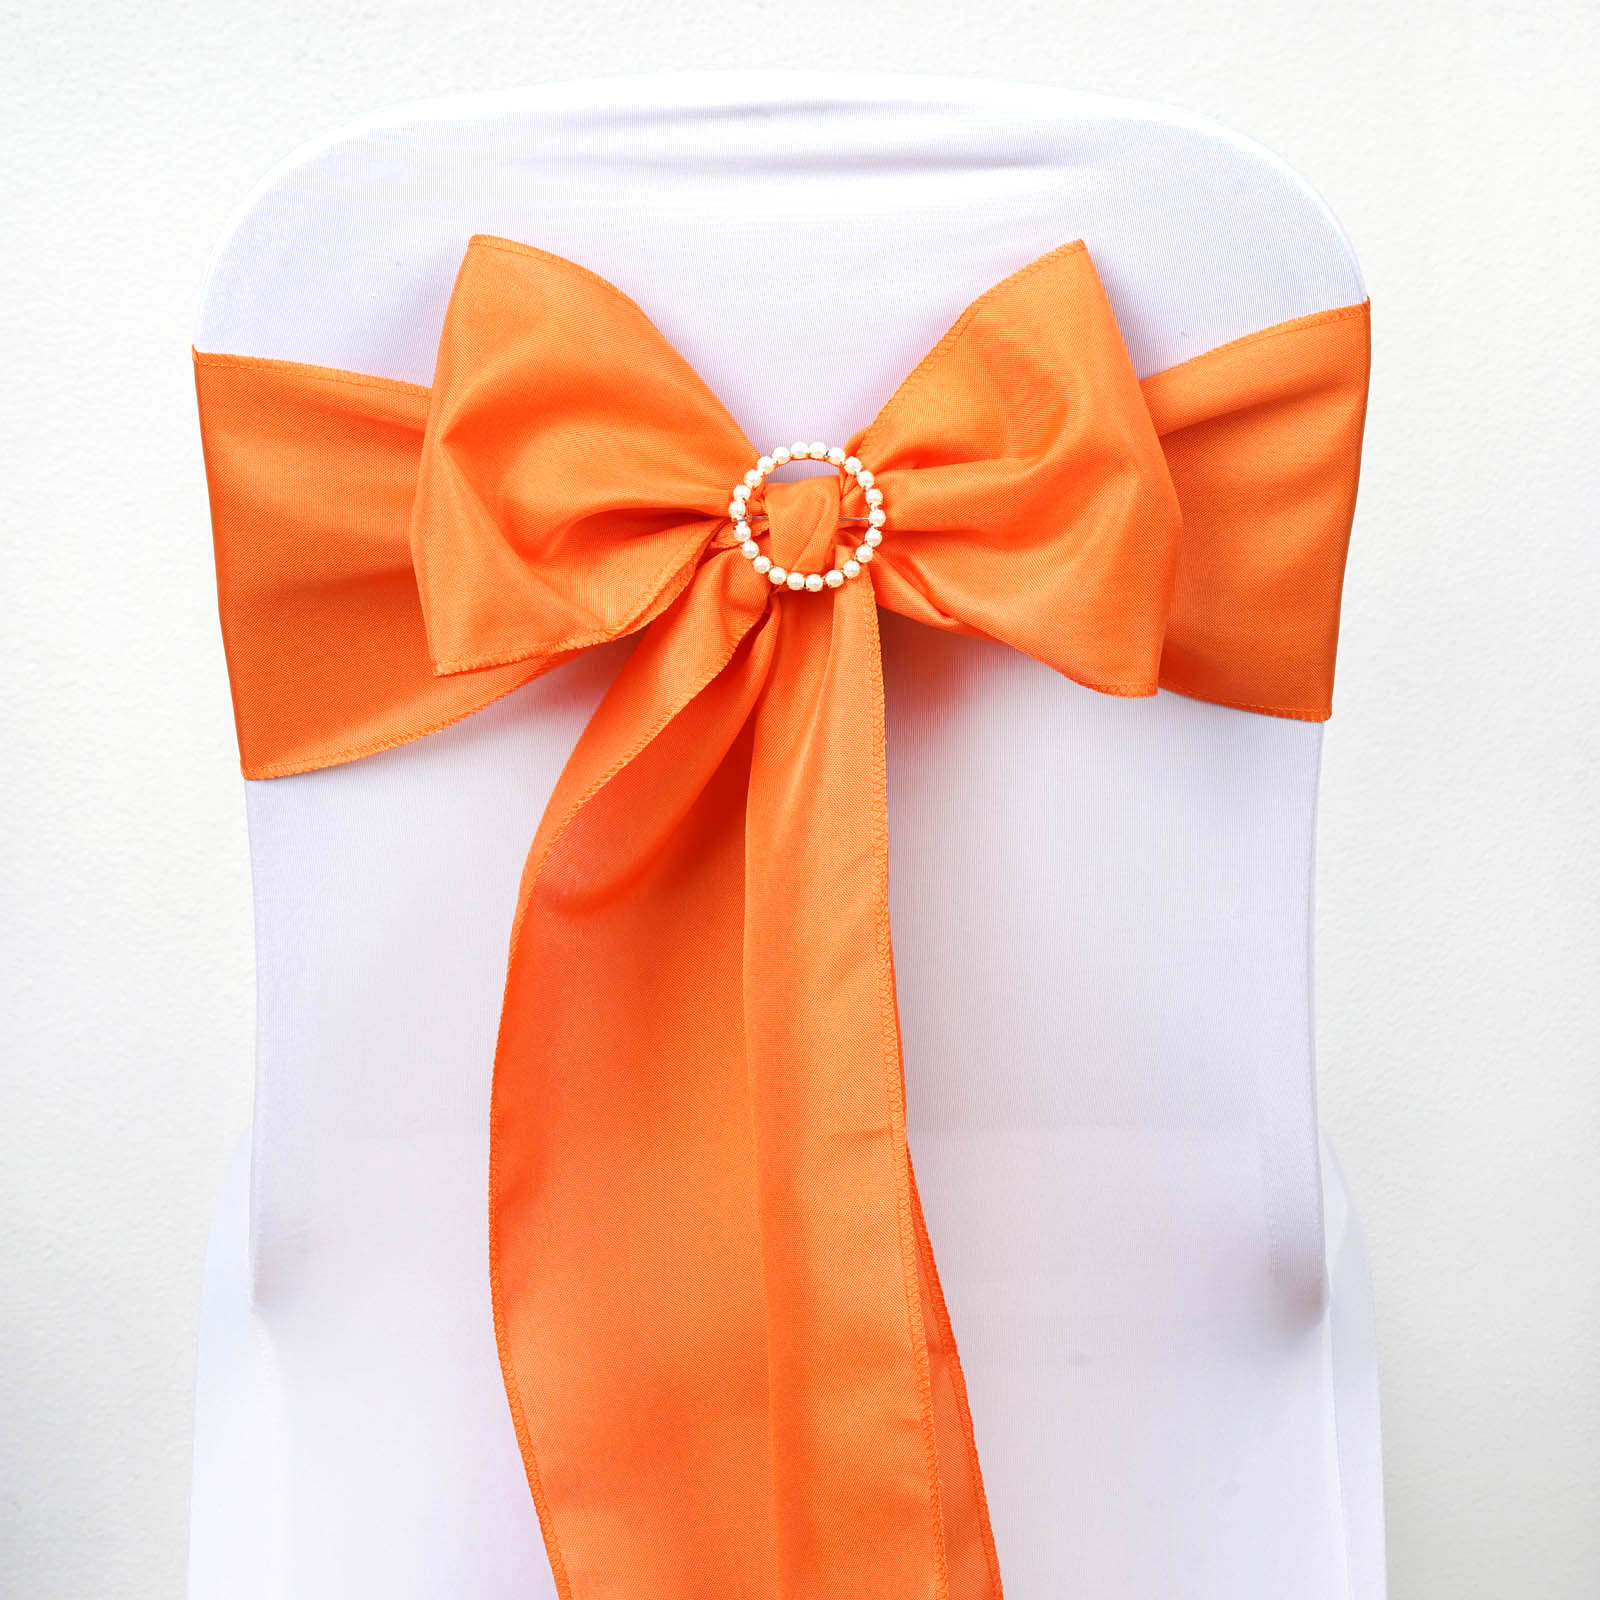 chair covers and bows ebay bariatric transport 500 lbs 200 polyester sashes ties wedding party